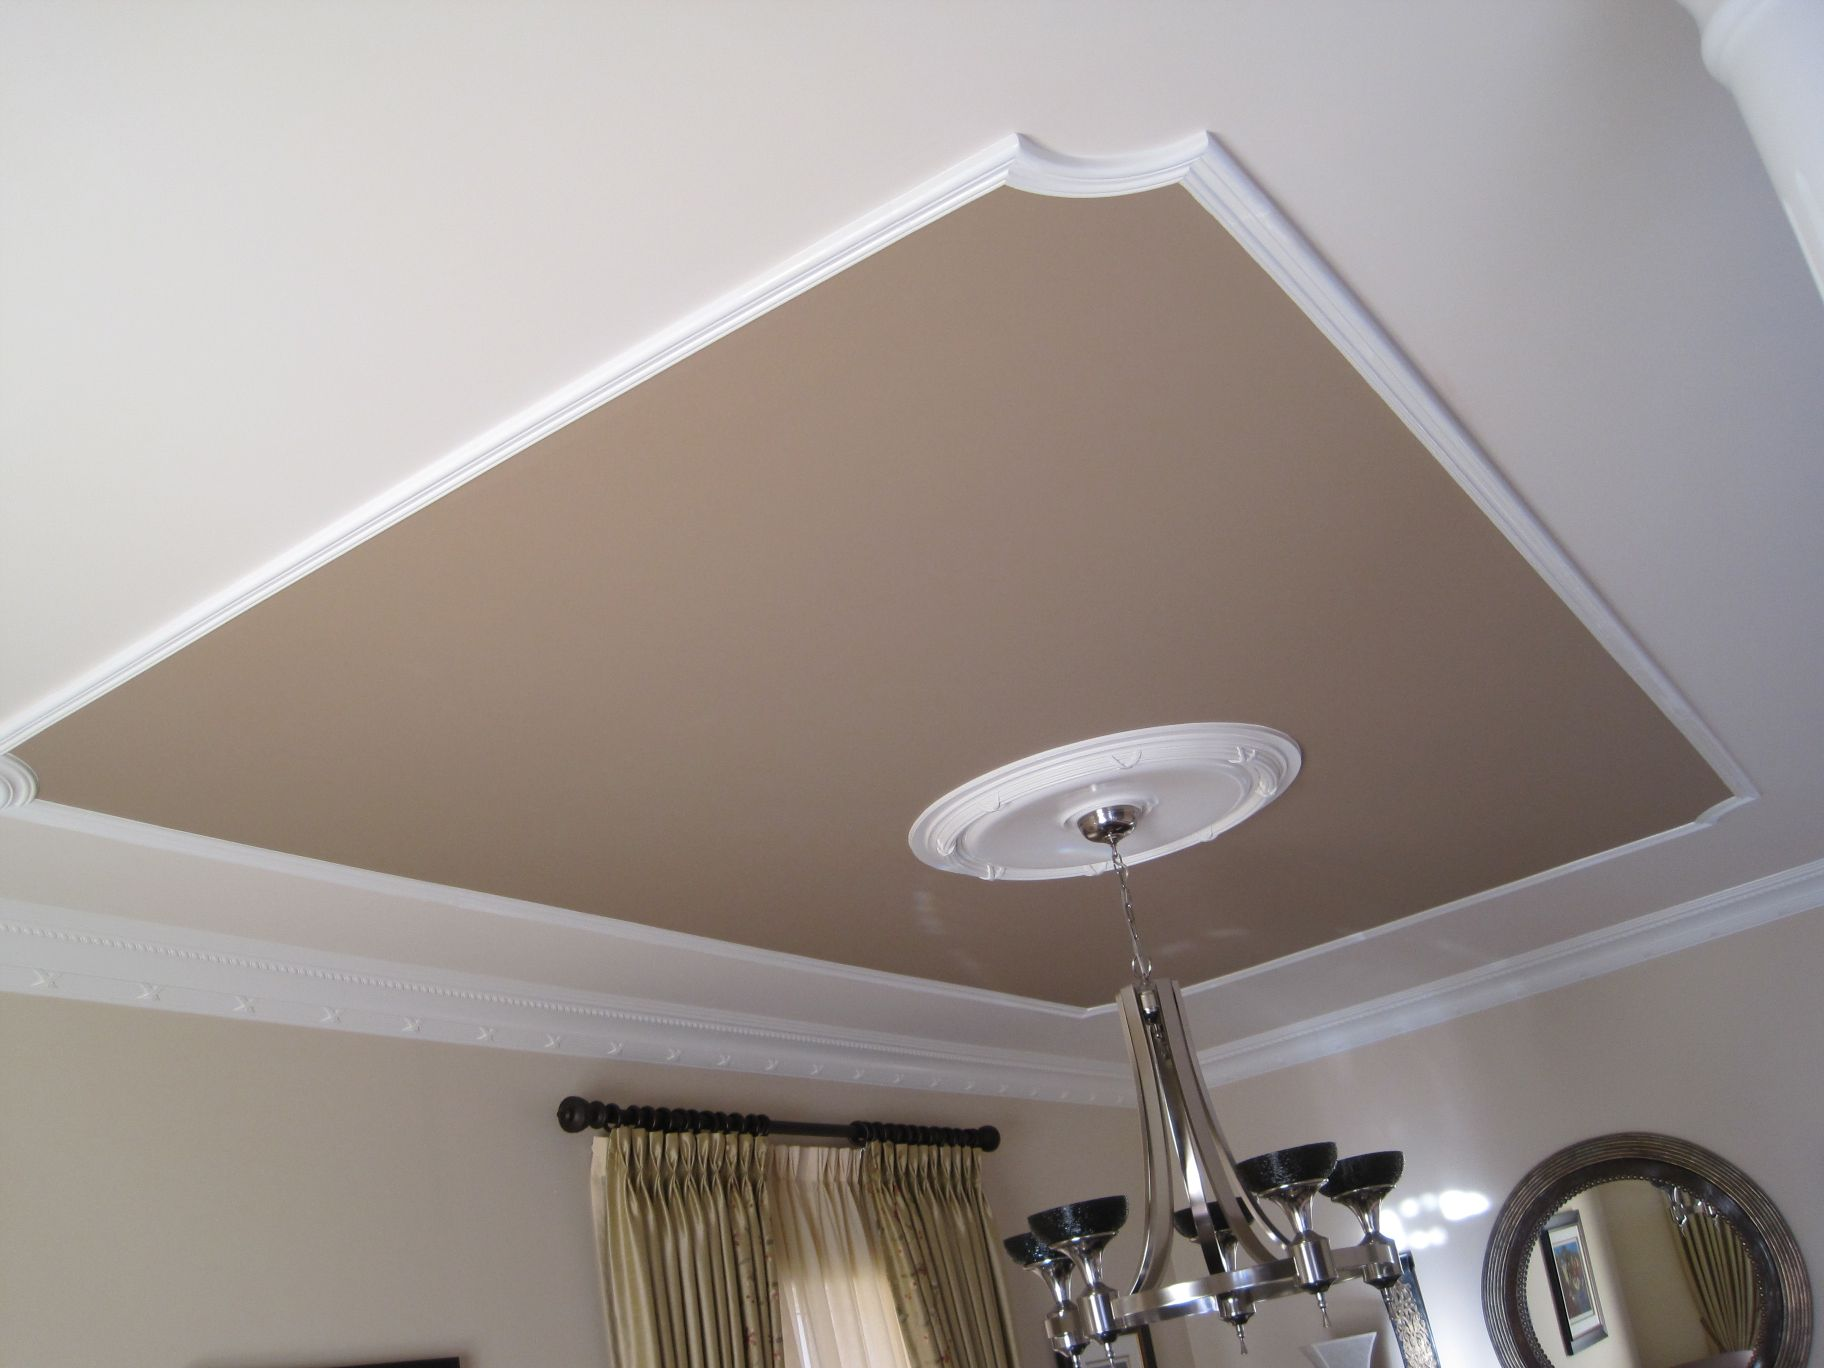 Baseboard Used On Ceiling And Moulding On Ceiling Here Are Some